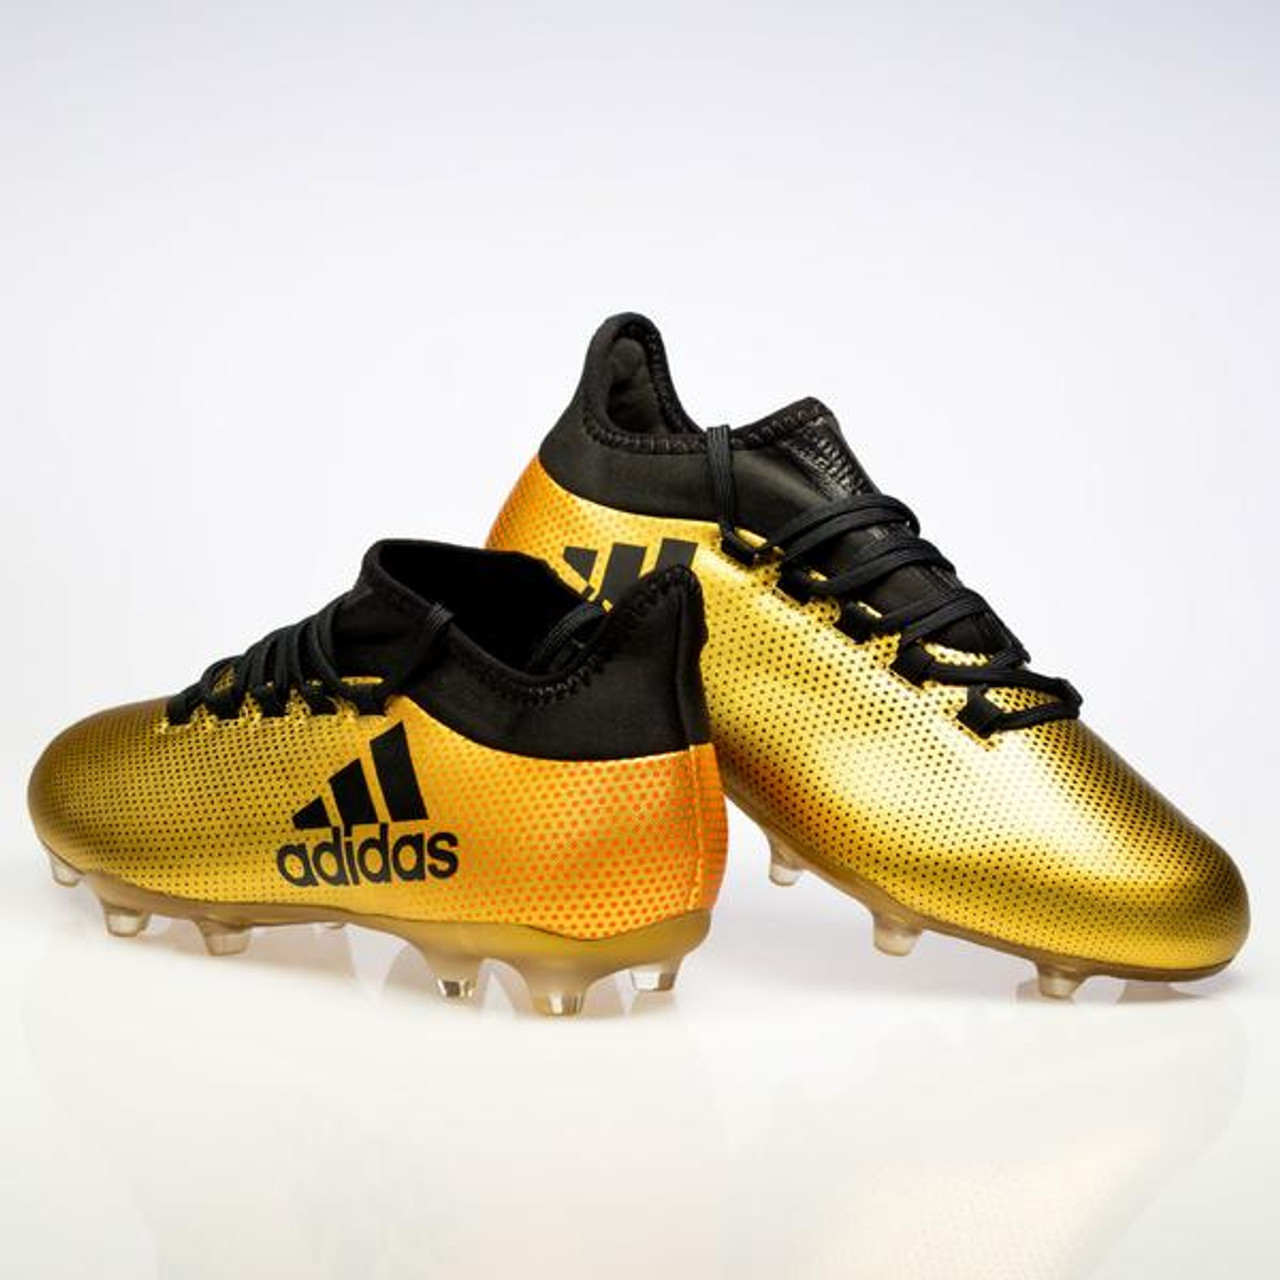 sale retailer adf44 9180c Adidas X 17.2 FG Men's Soccer Cleats CP9186 - Gold, Black, Red